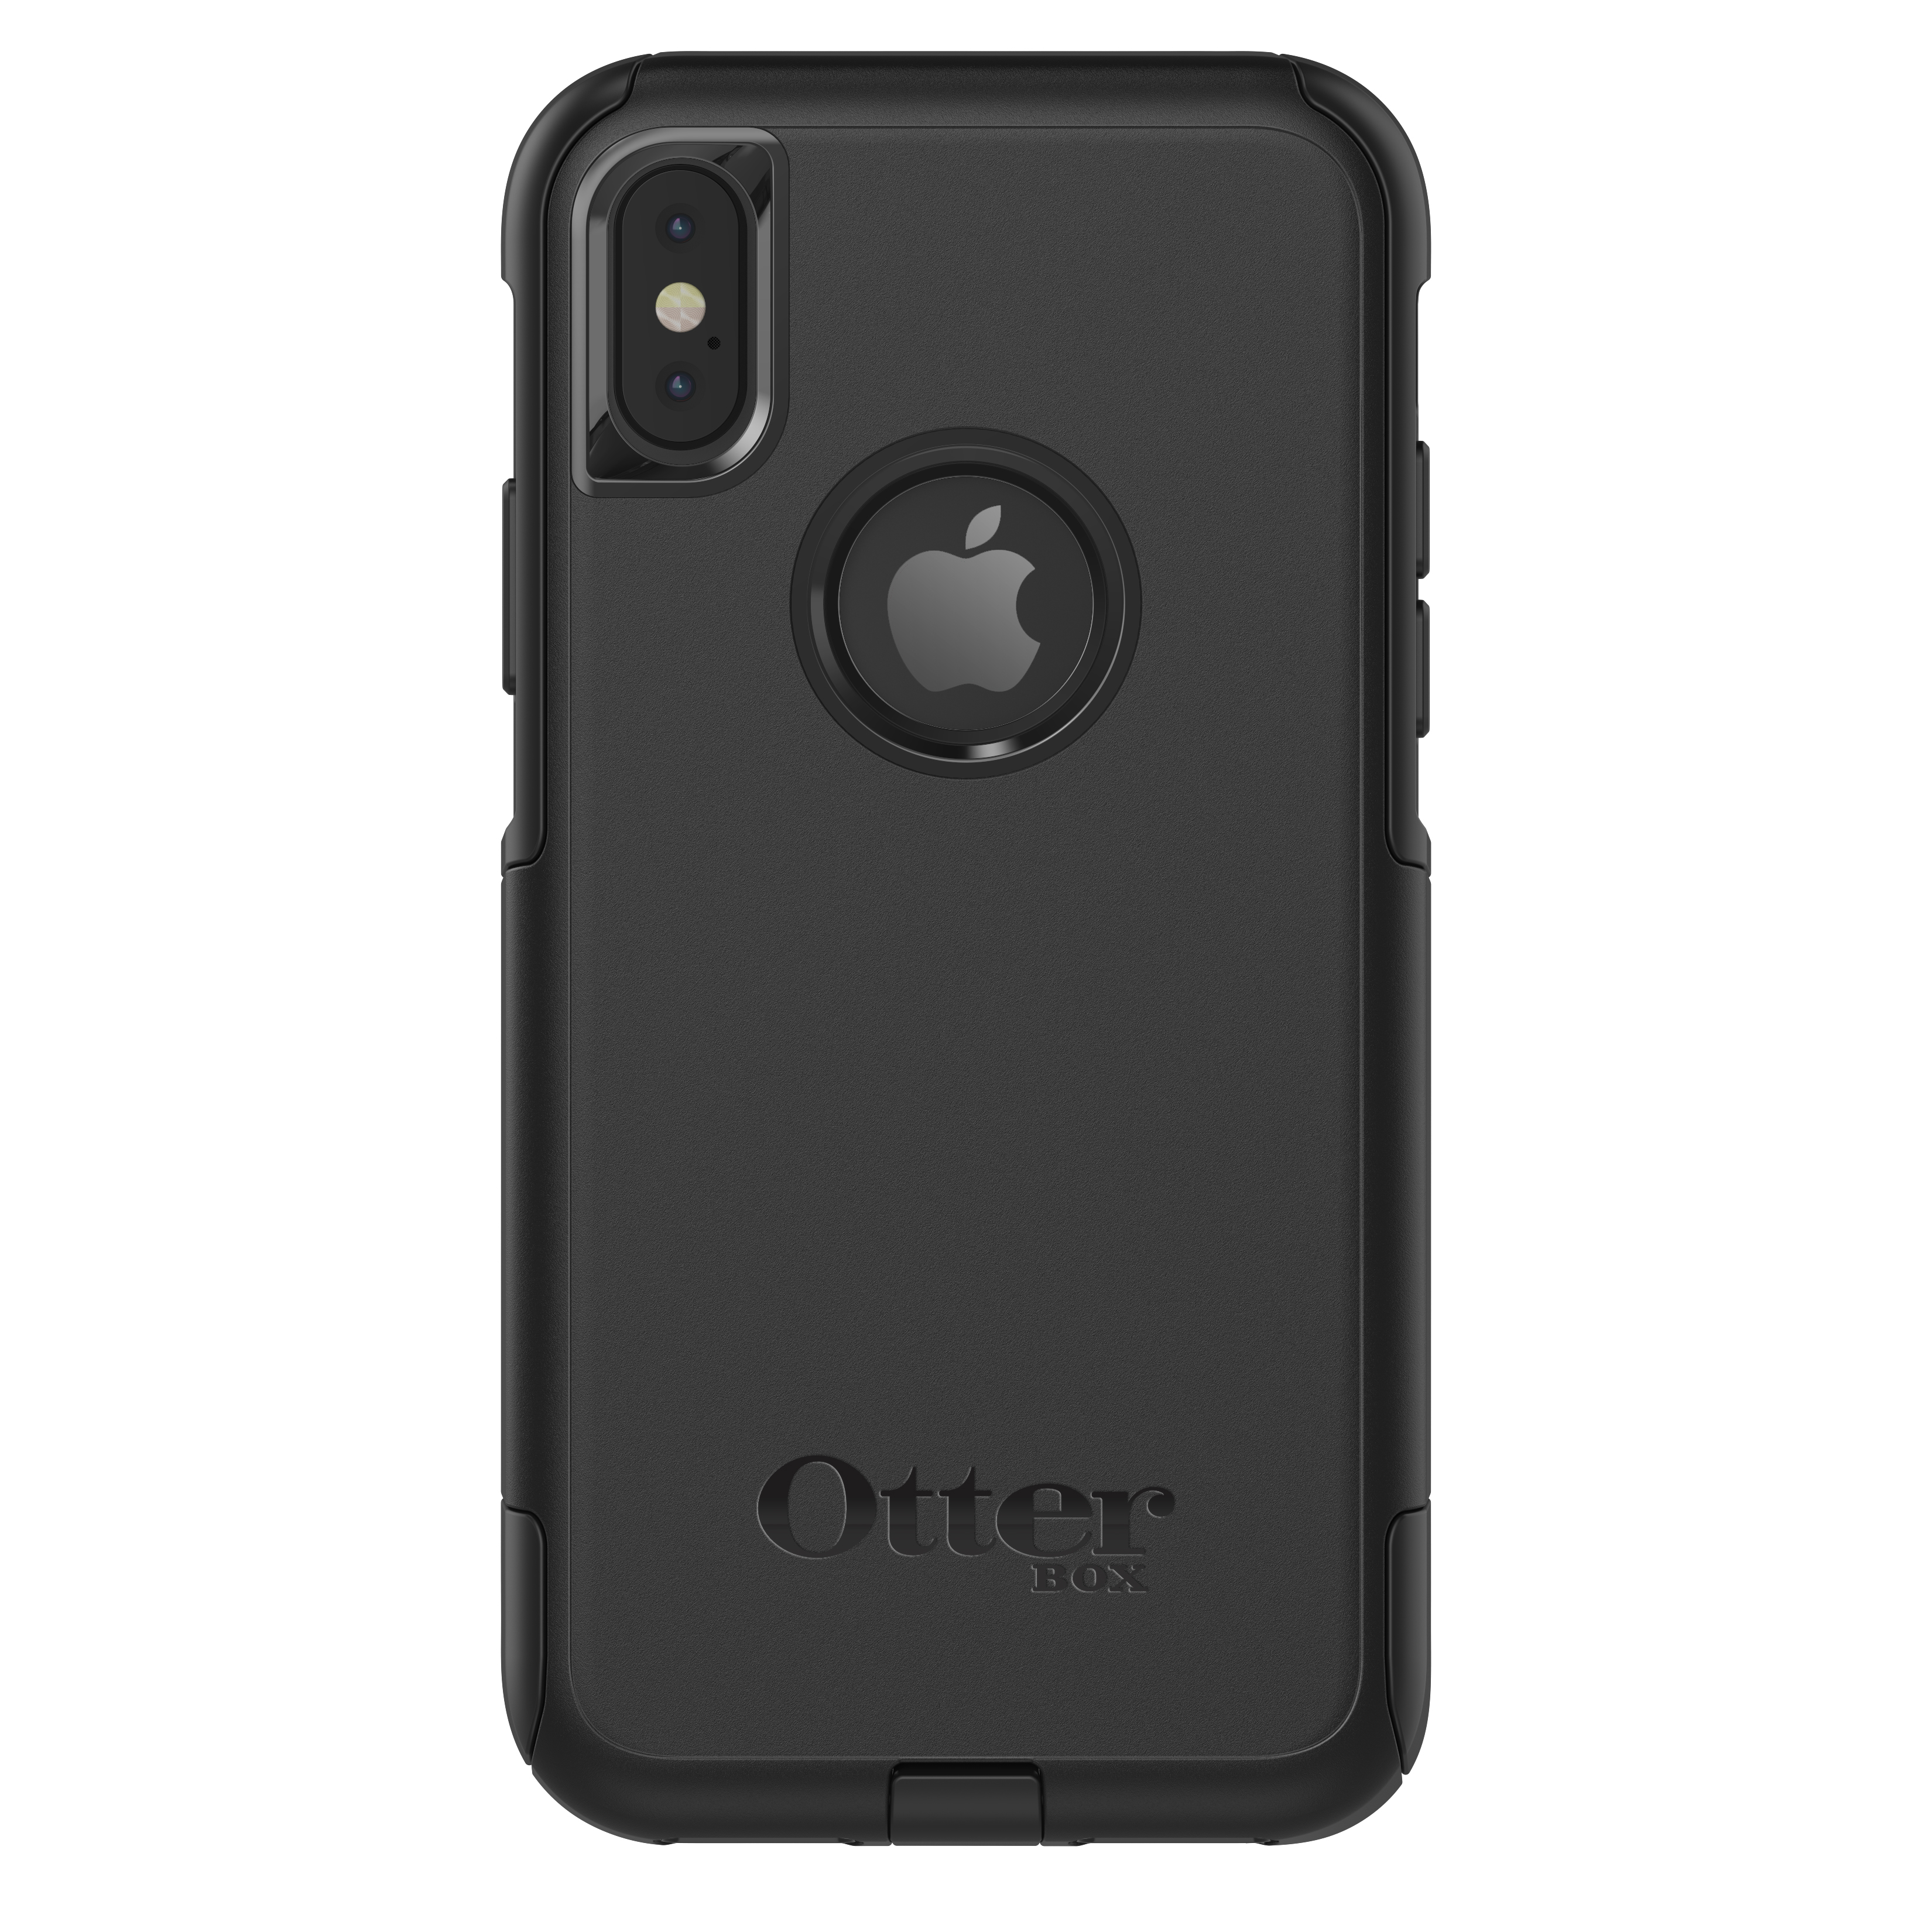 iphone 4 otterbox cases otterbox commuter series for iphone x black 2752